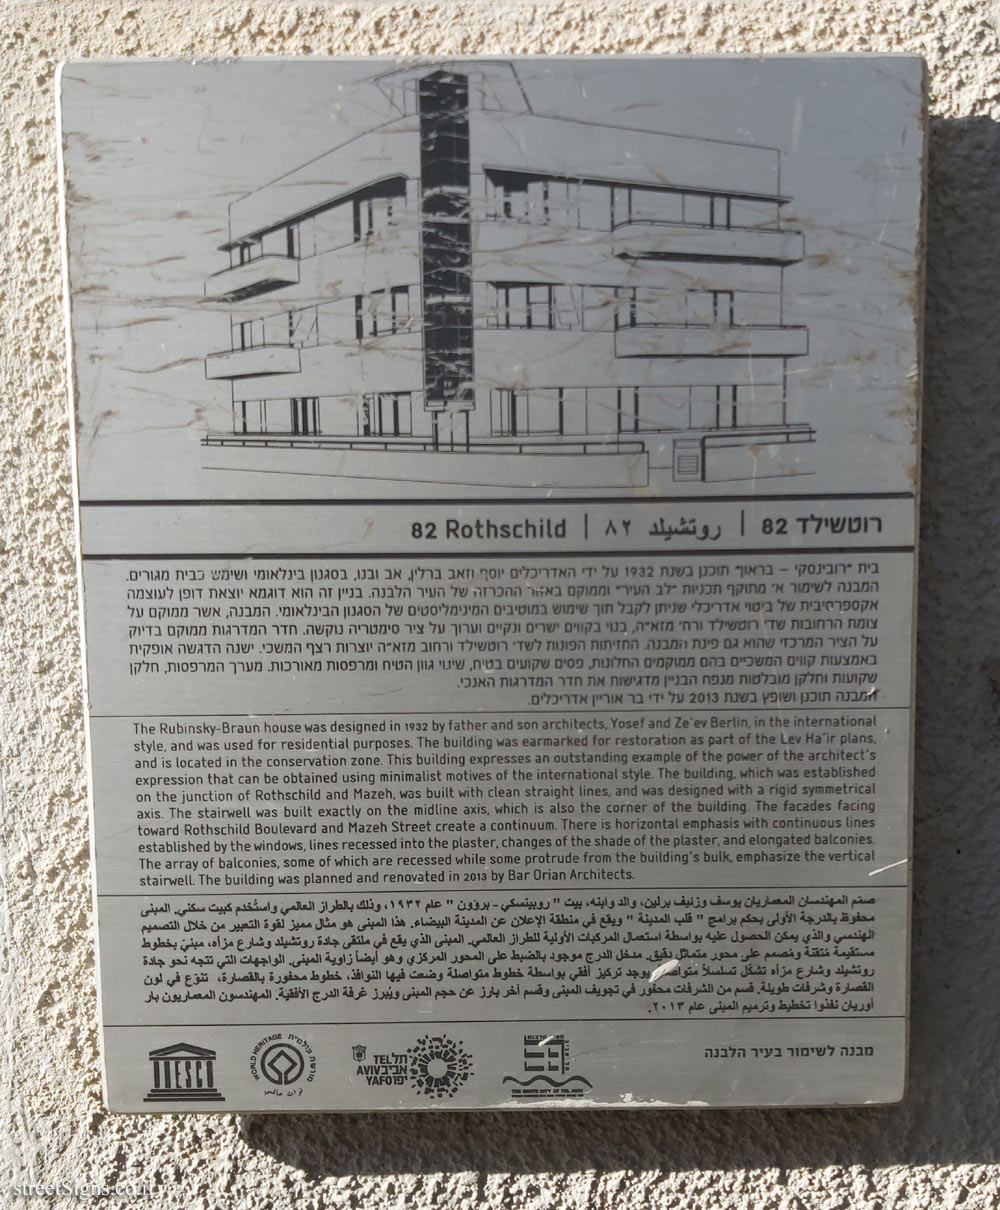 Tel Aviv - buildings for conservation - Rothschild 82